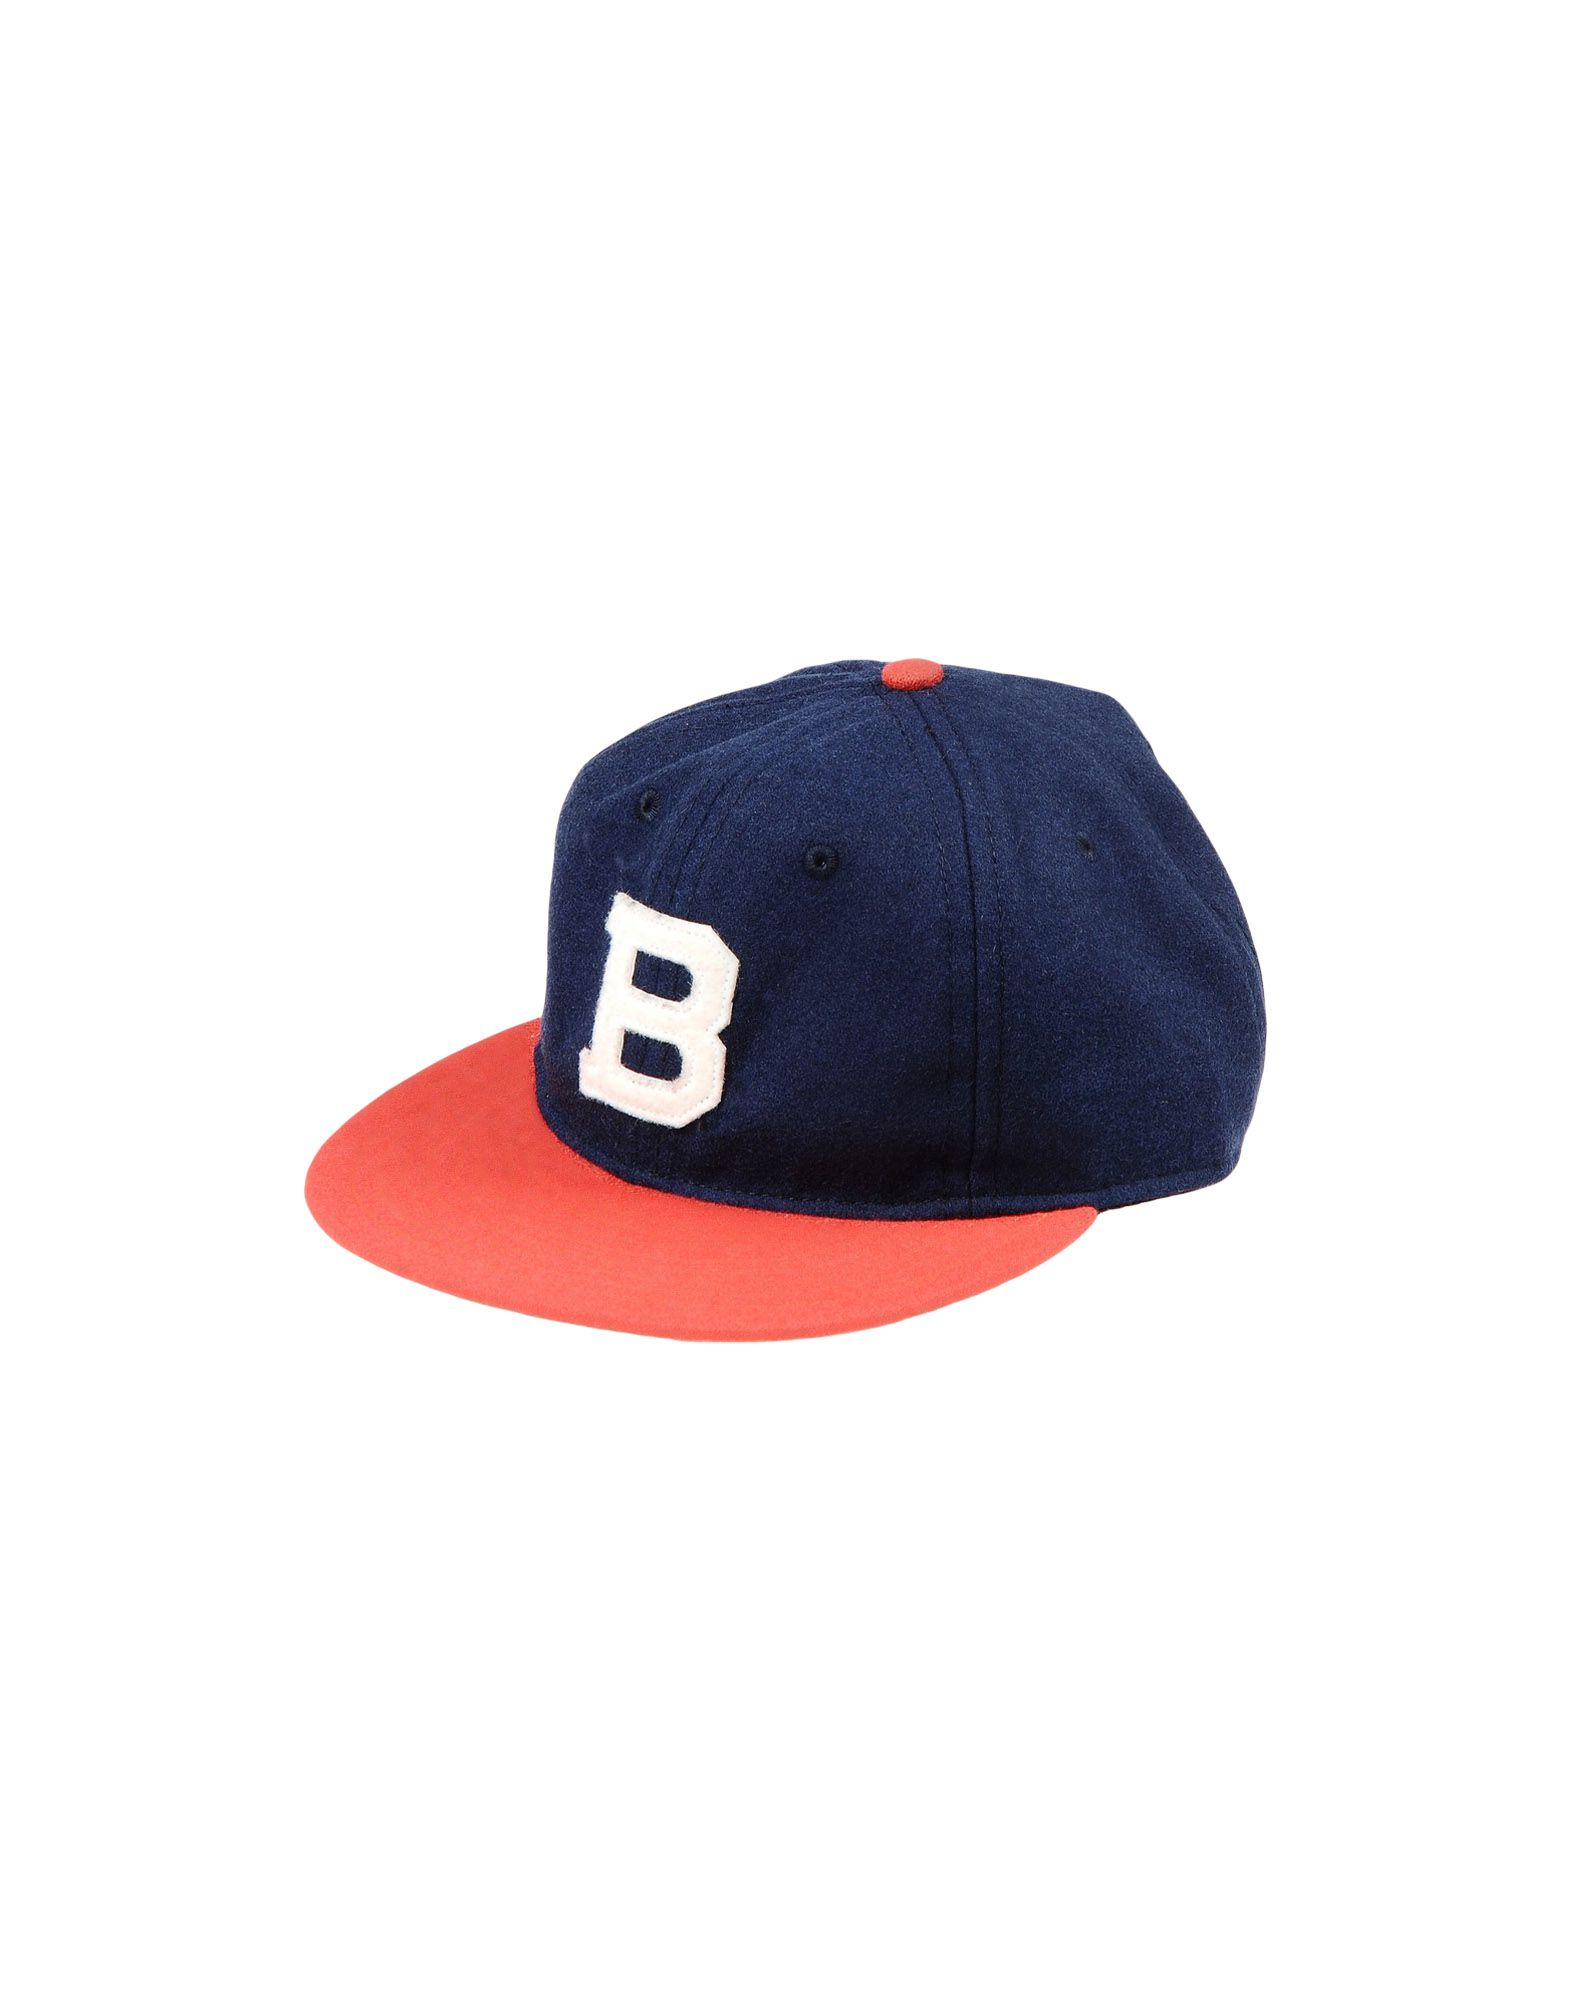 EBBETS FIELD FLANNELS Hat in Dark Blue